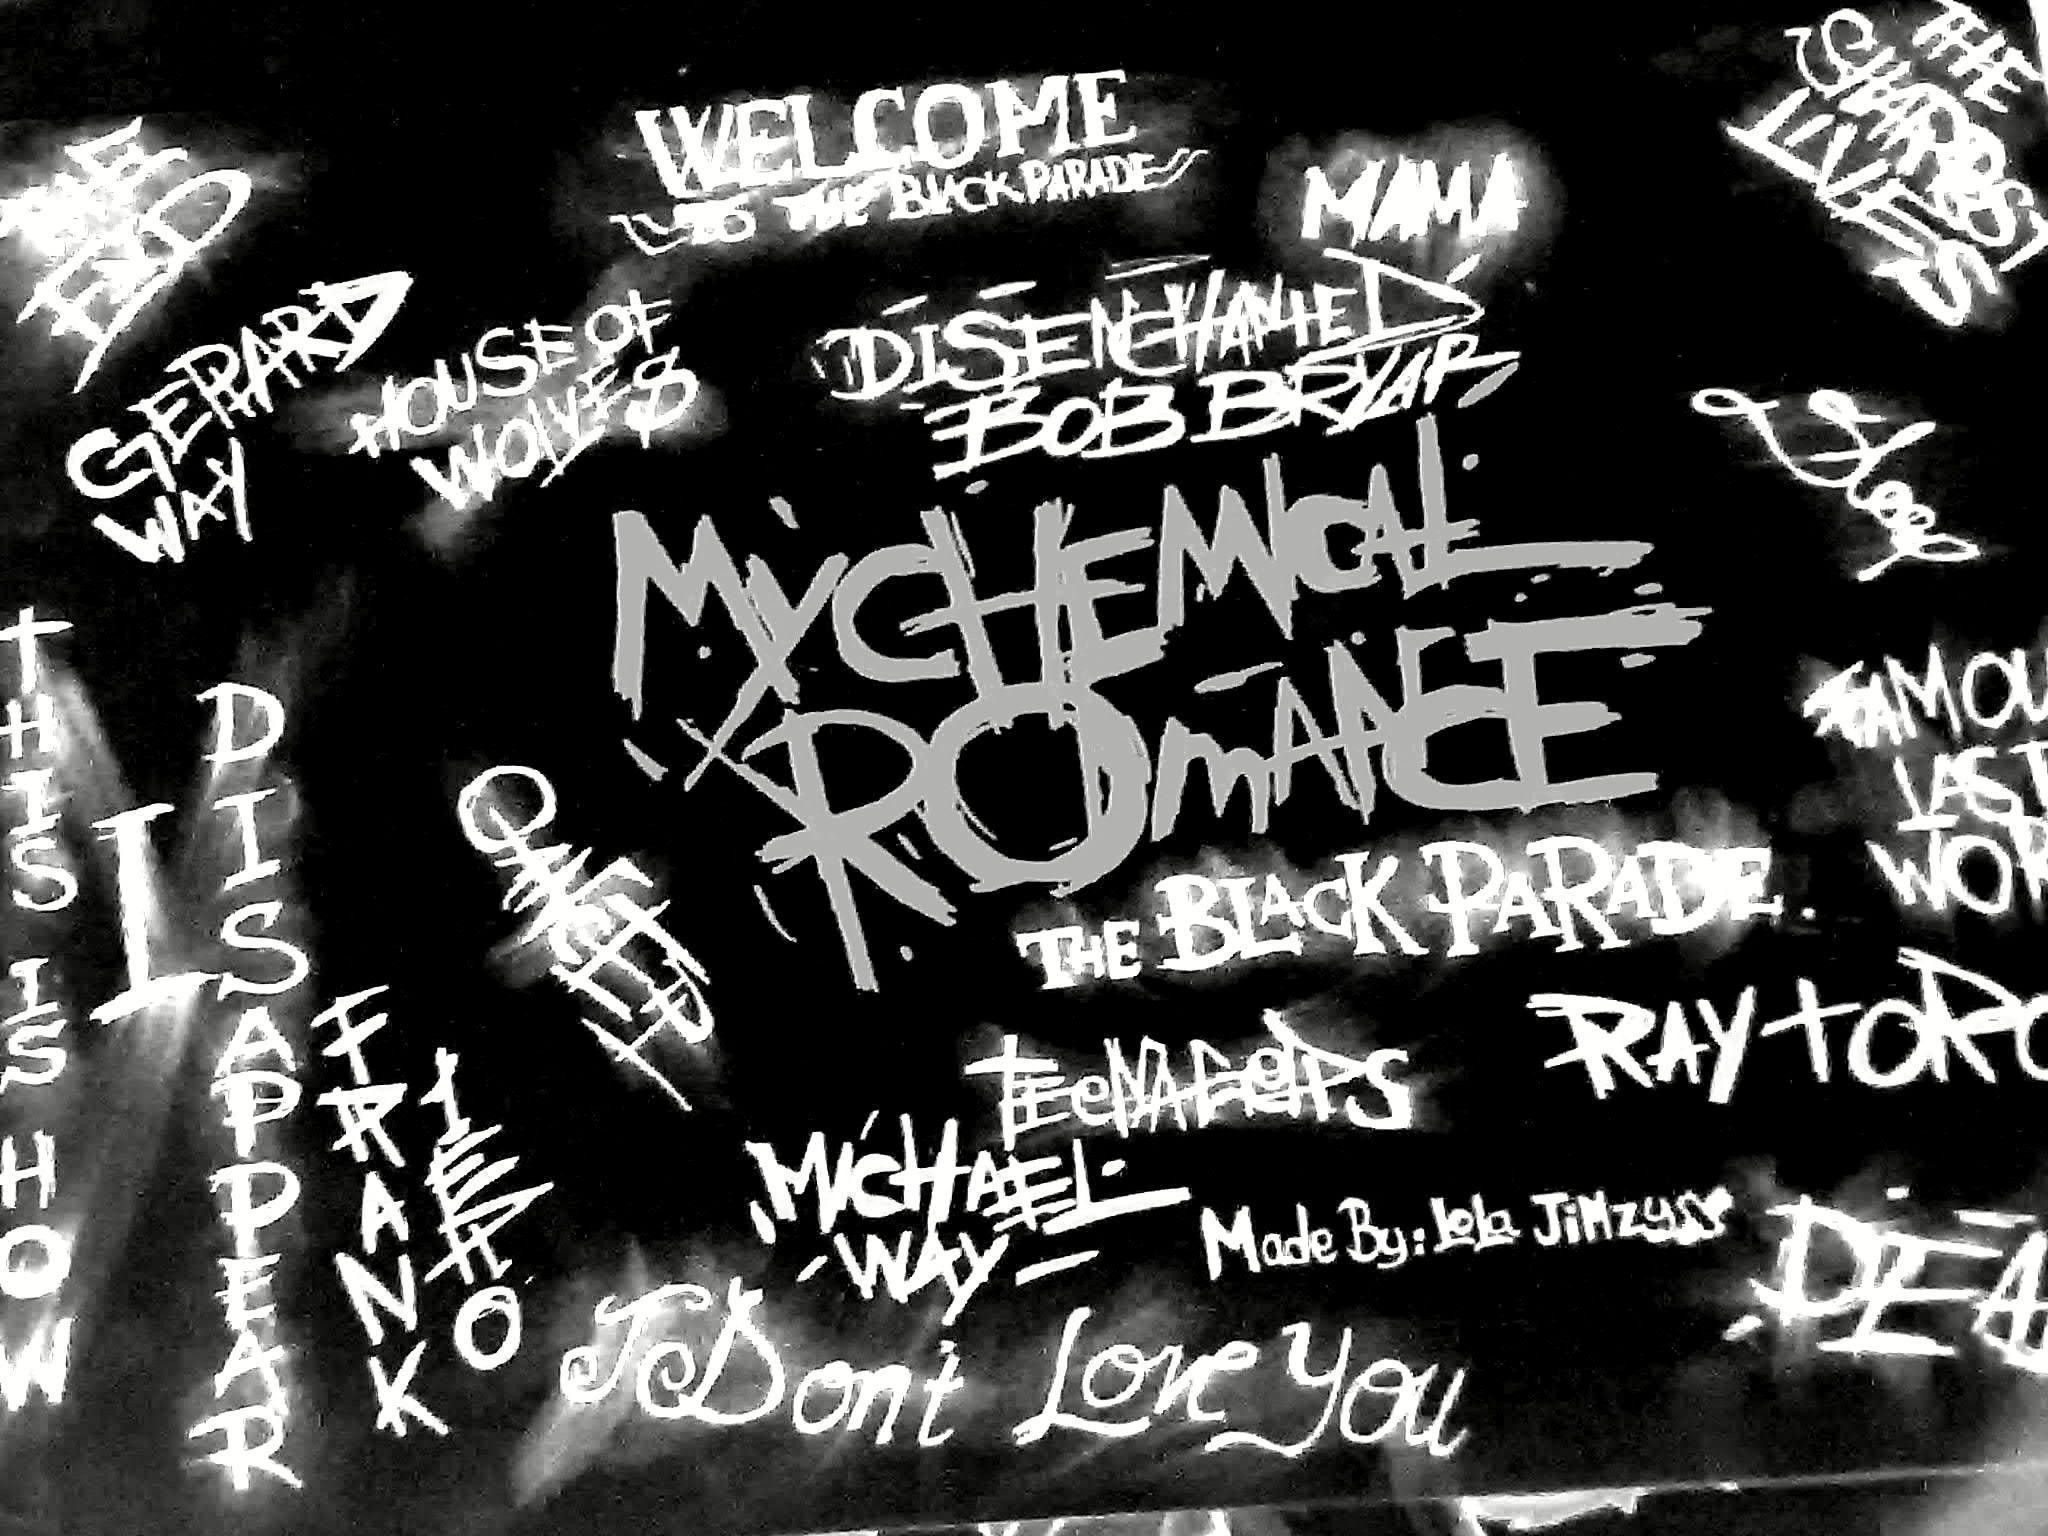 My Chemical Romance Blackboard Image